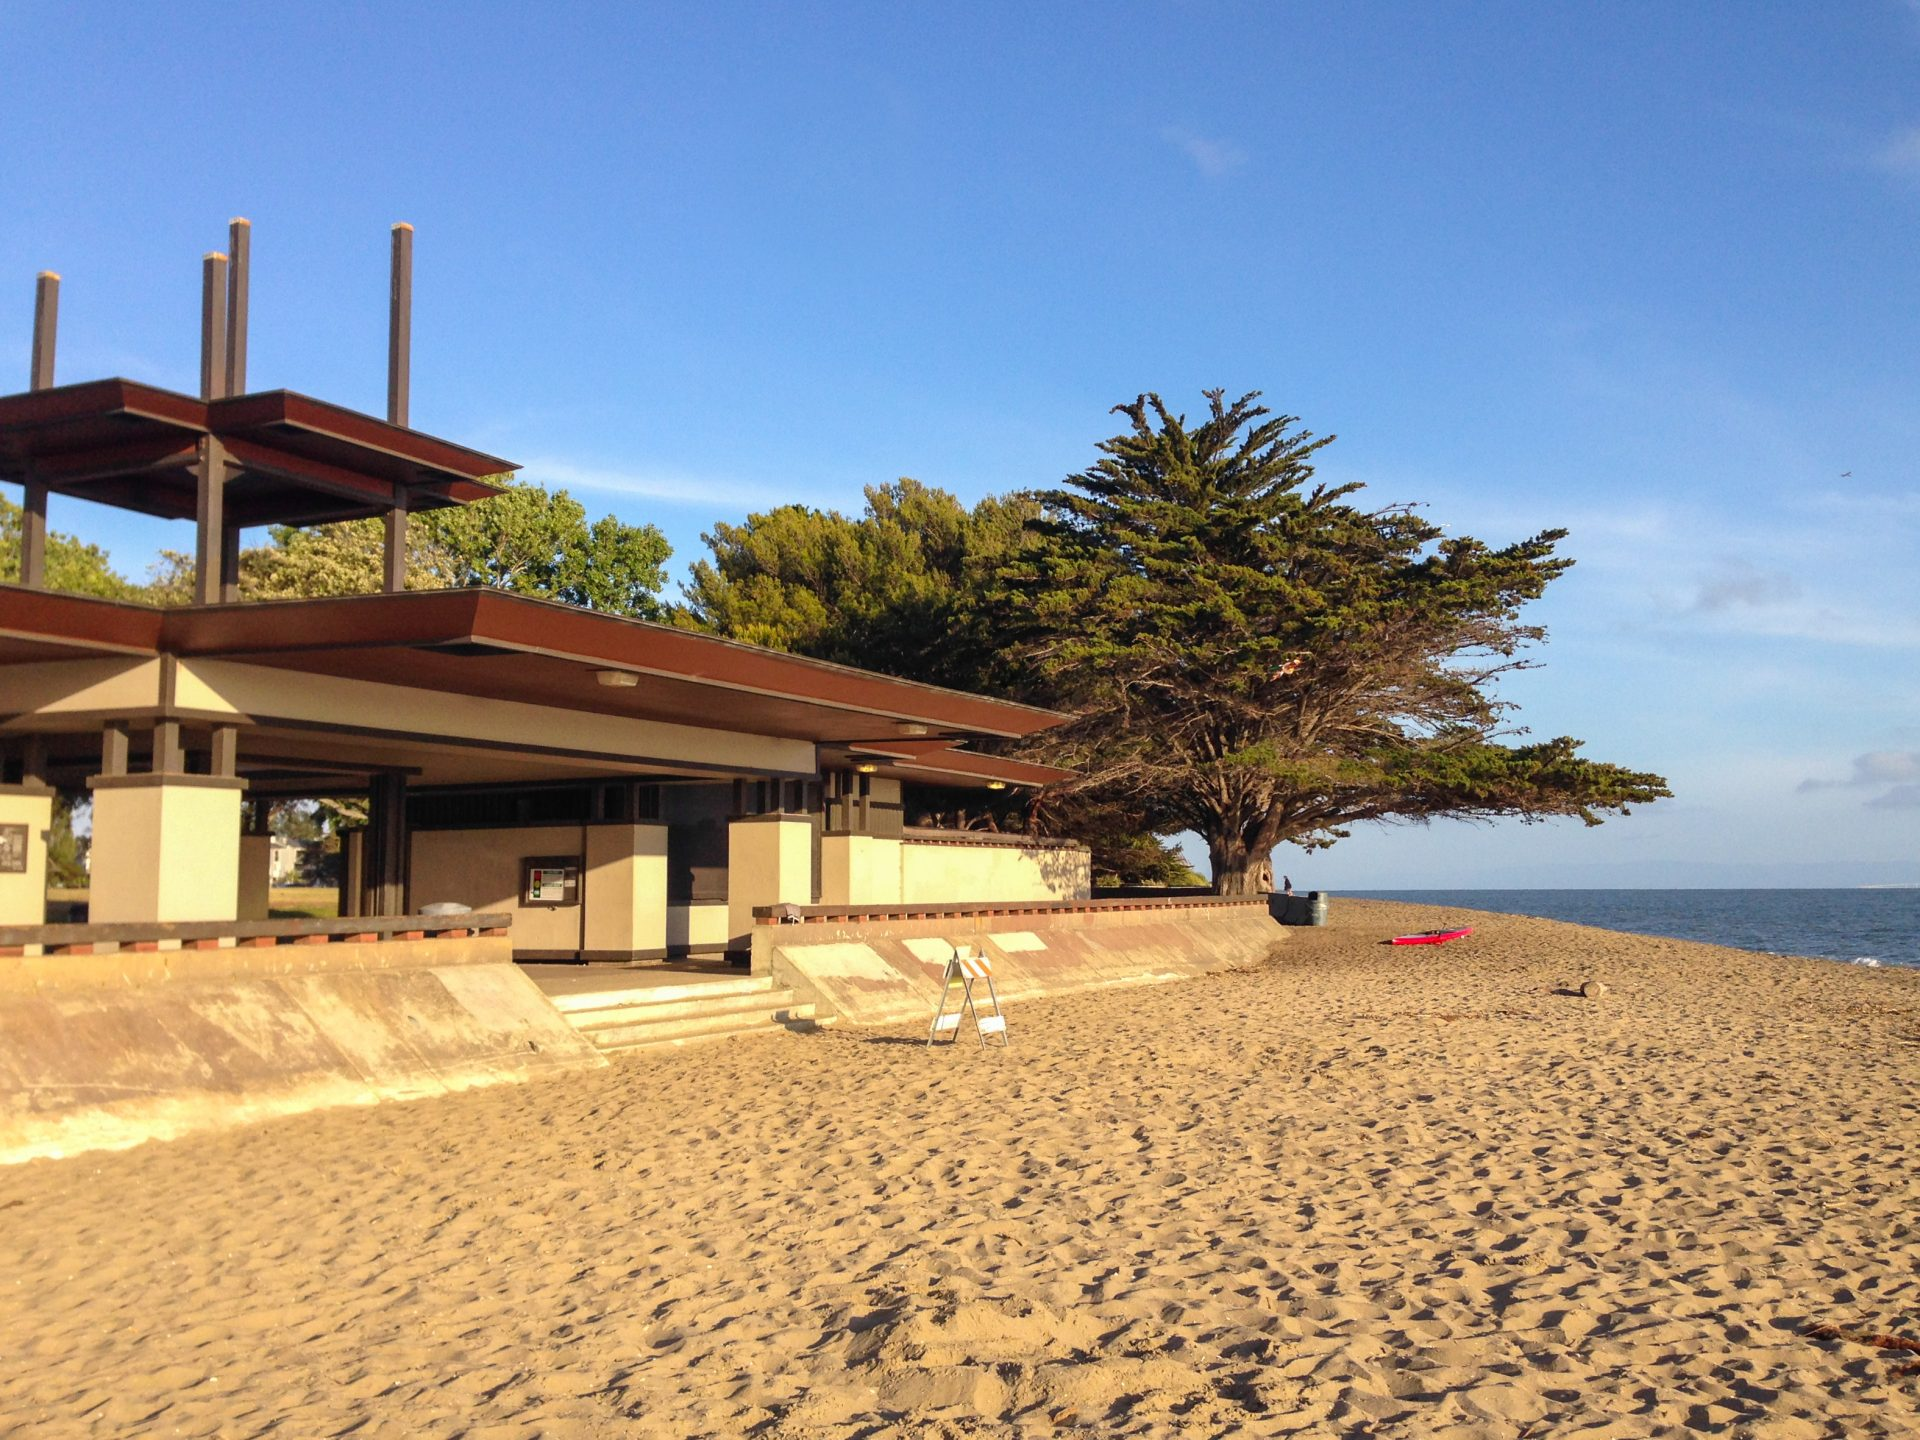 Wide sandy beach in evening light, with visitor center on left